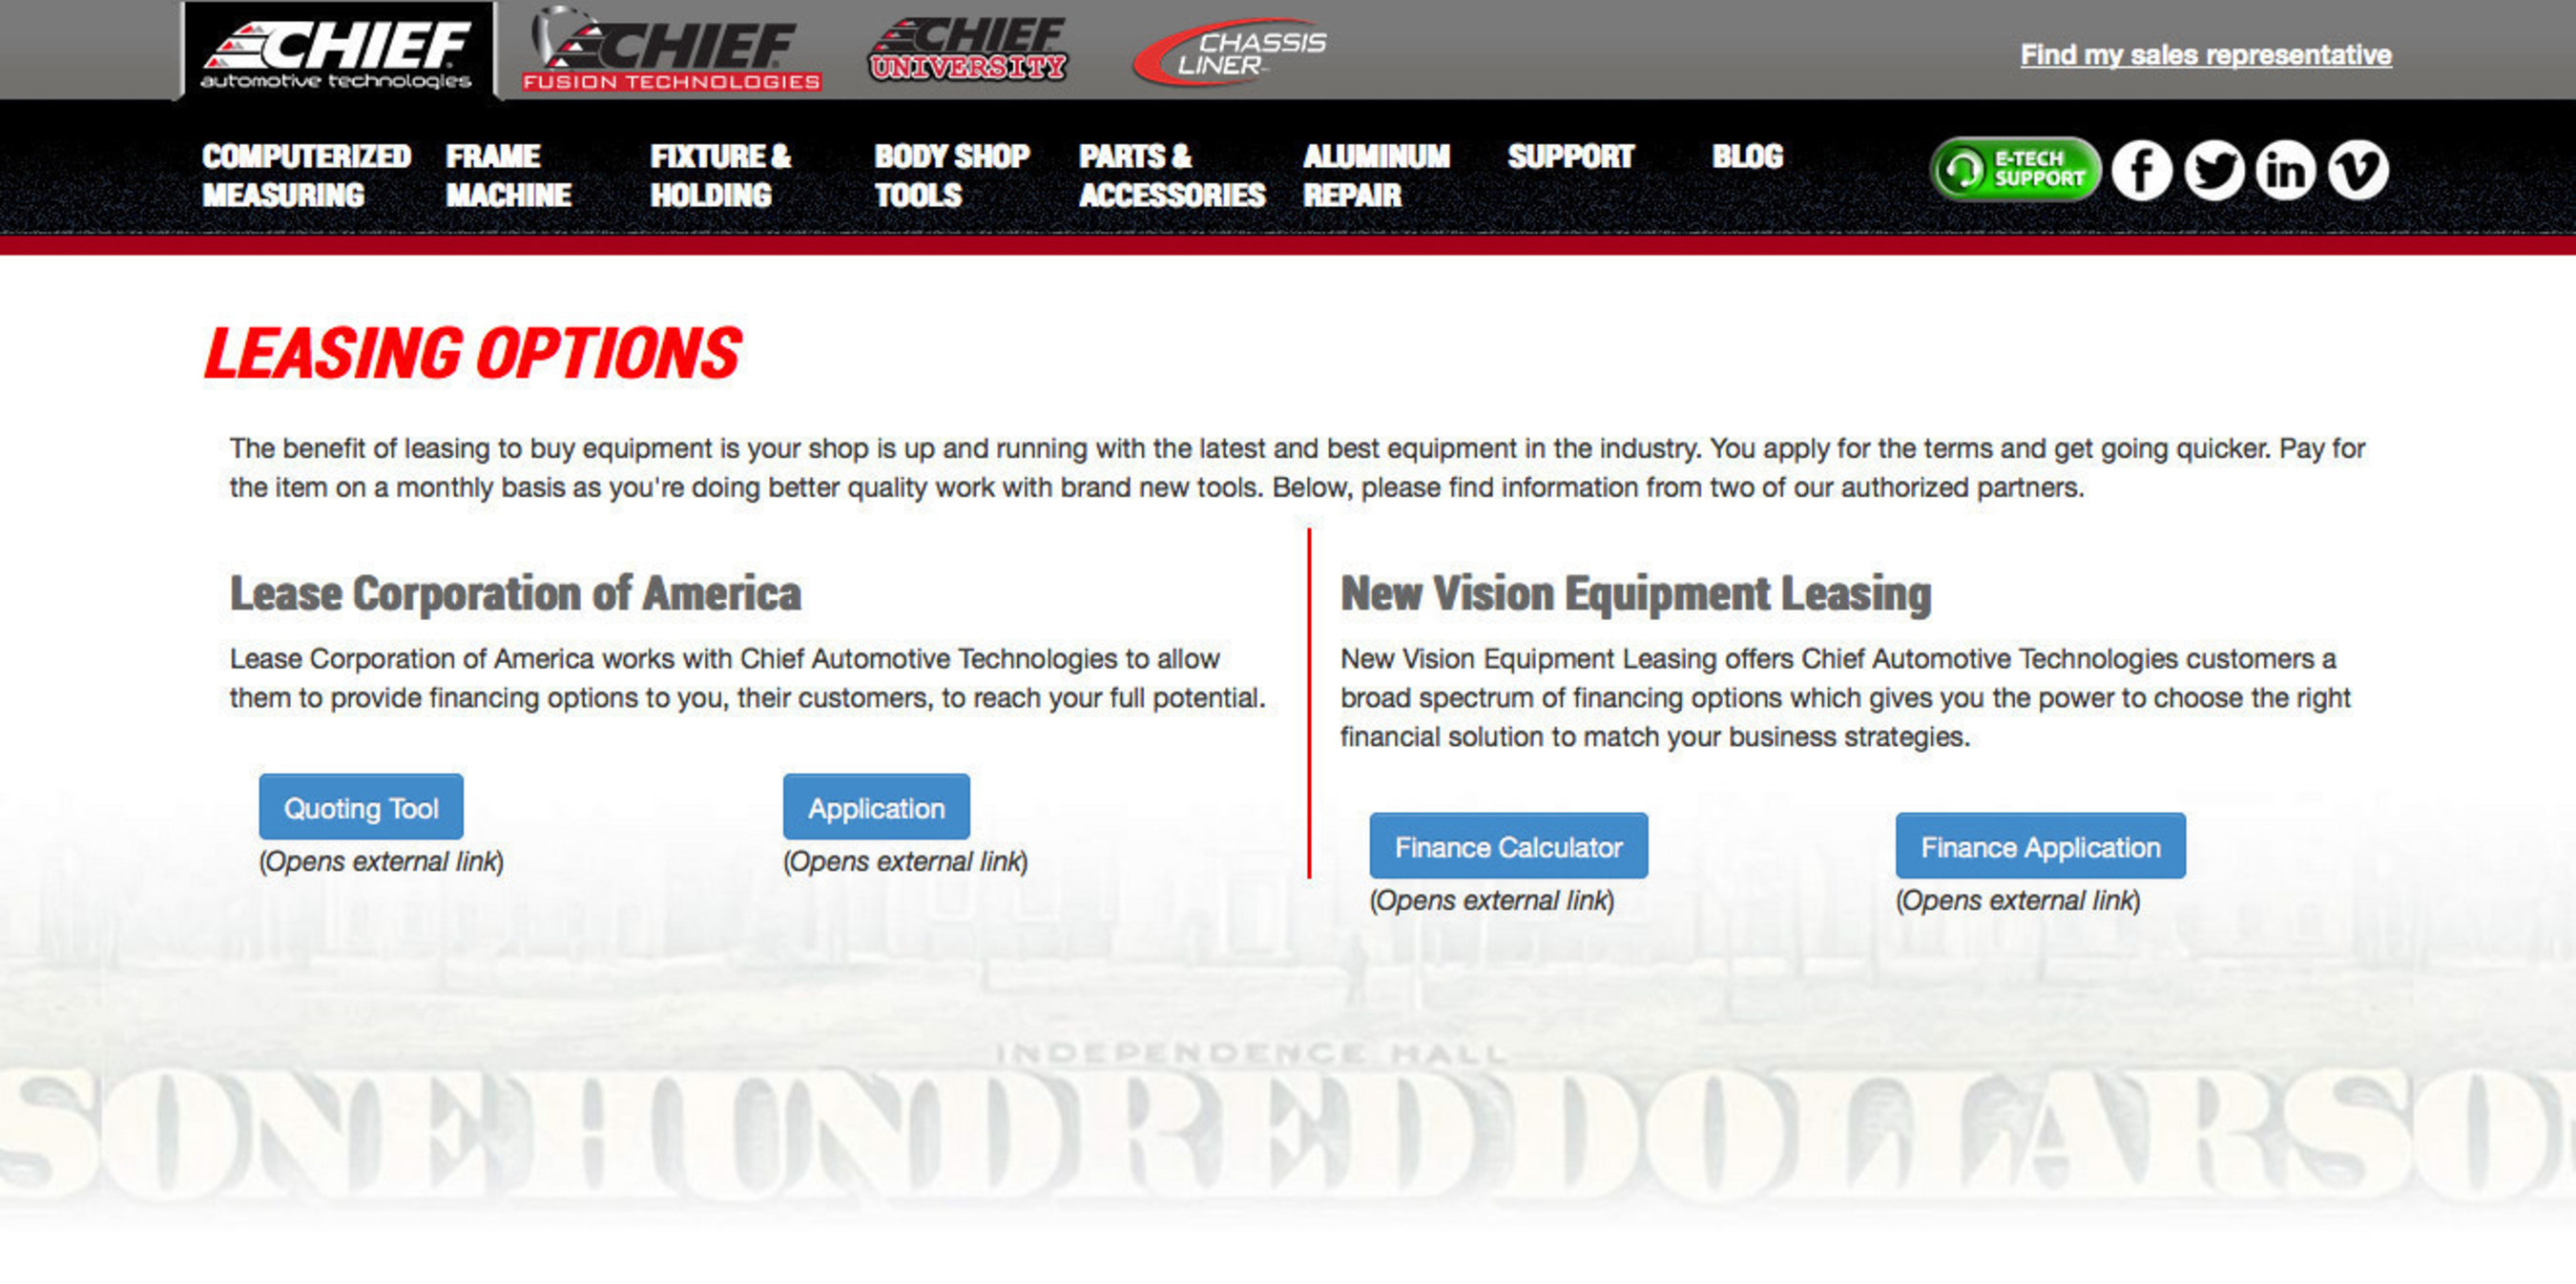 Chief Introduces Online Leasing Tools to Help Customers Cost-Effectively Update Their Shops